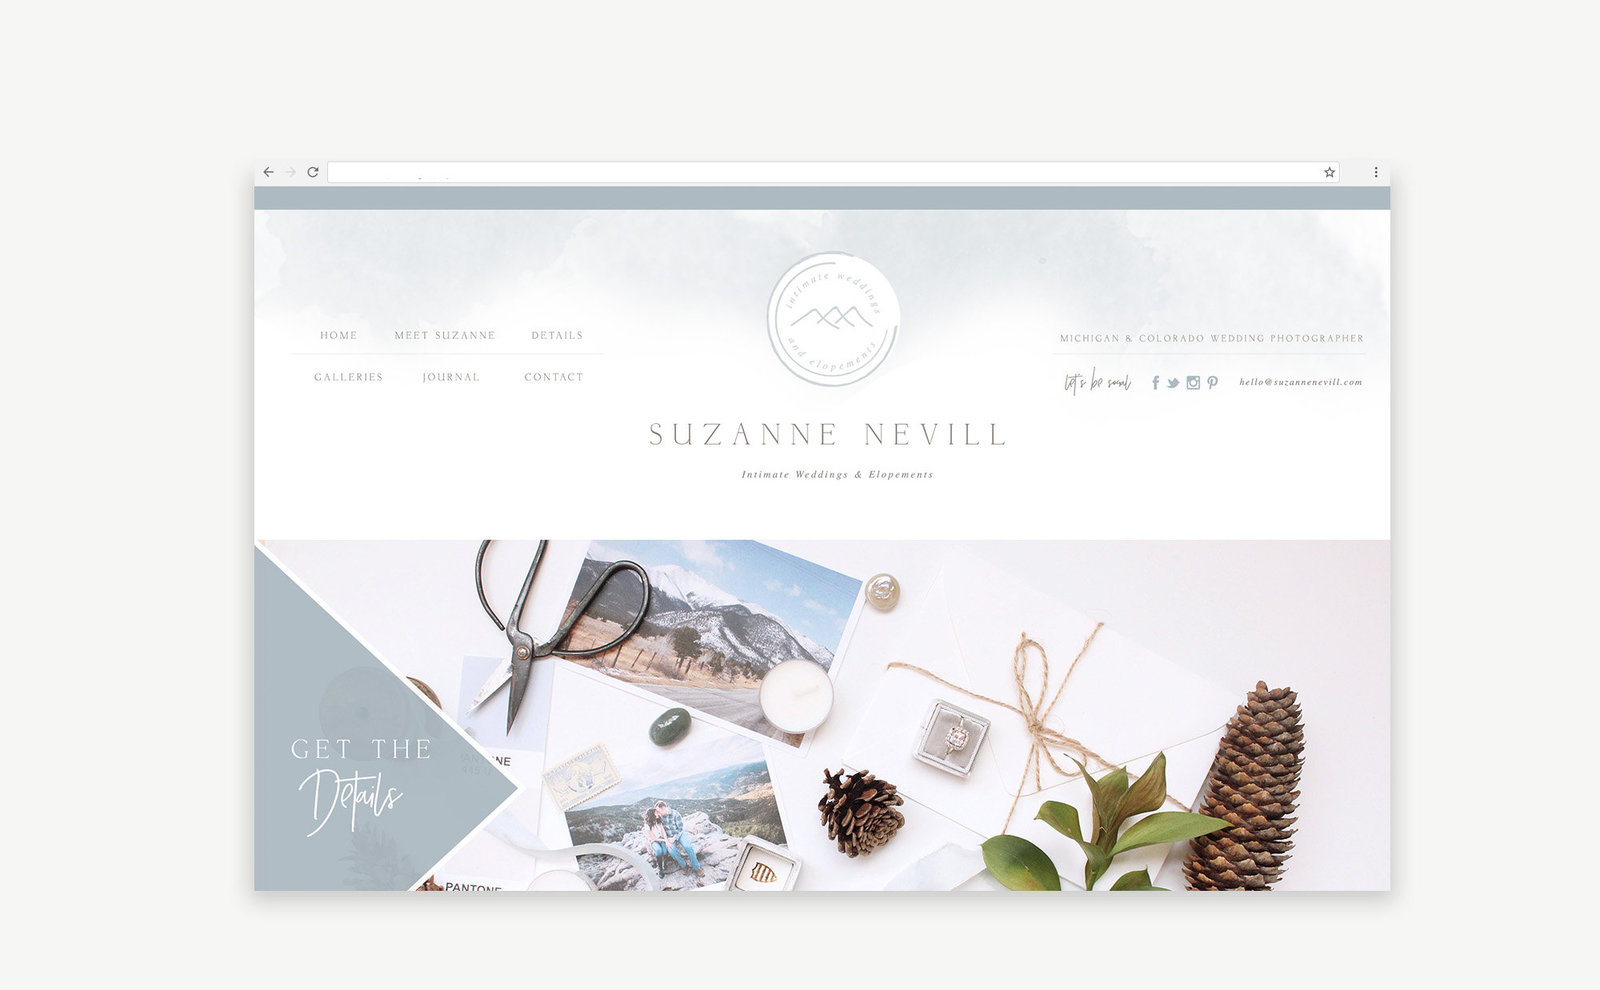 website-design-photographer-web-design-custom-showit5-colorado-wedding-photographer-suzanne-nevill-03